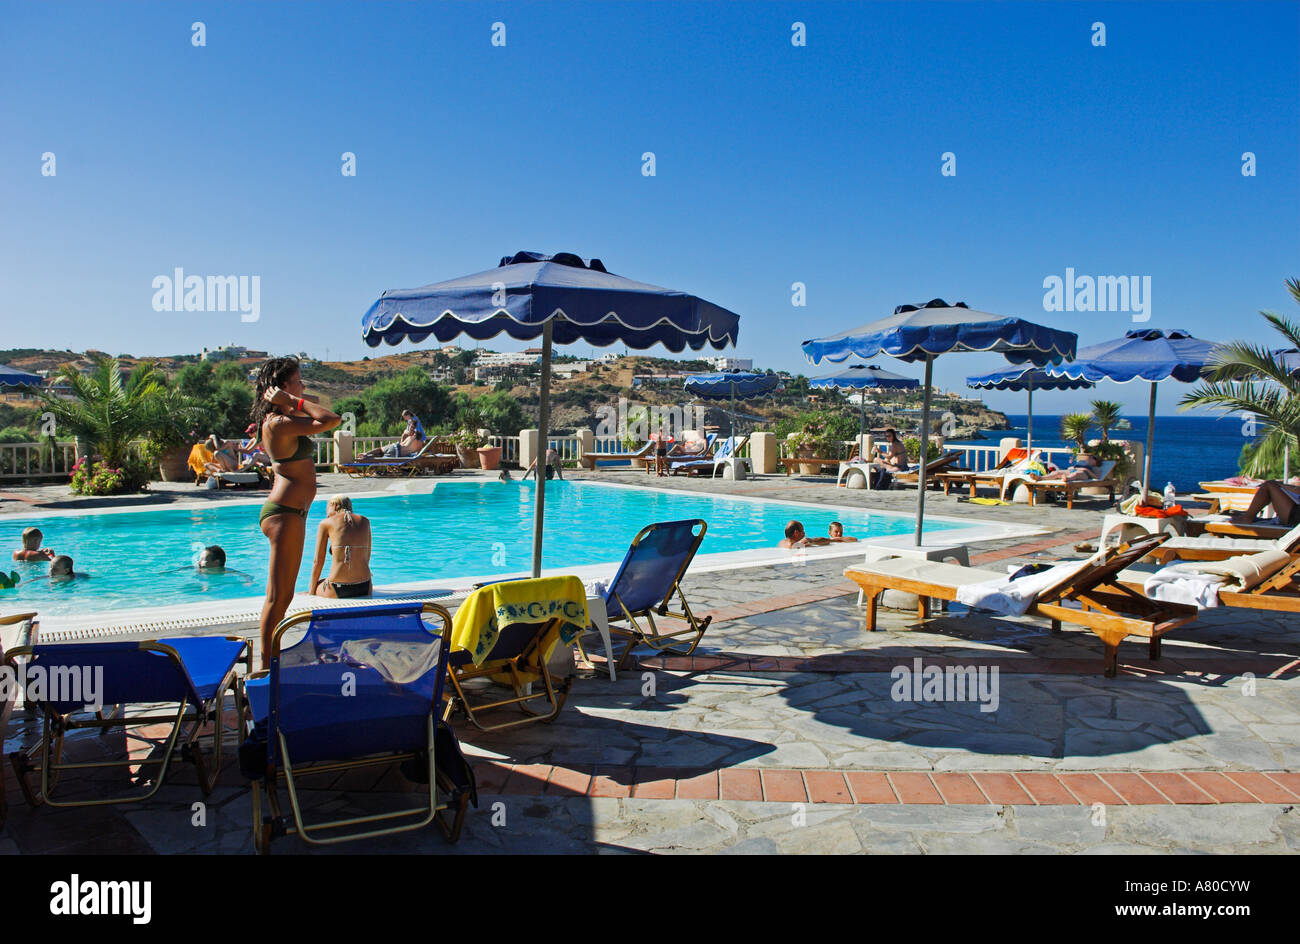 Hotel pool with people  People at hotel pool overlooking sea and hills at Capsis Hotel Aghia ...